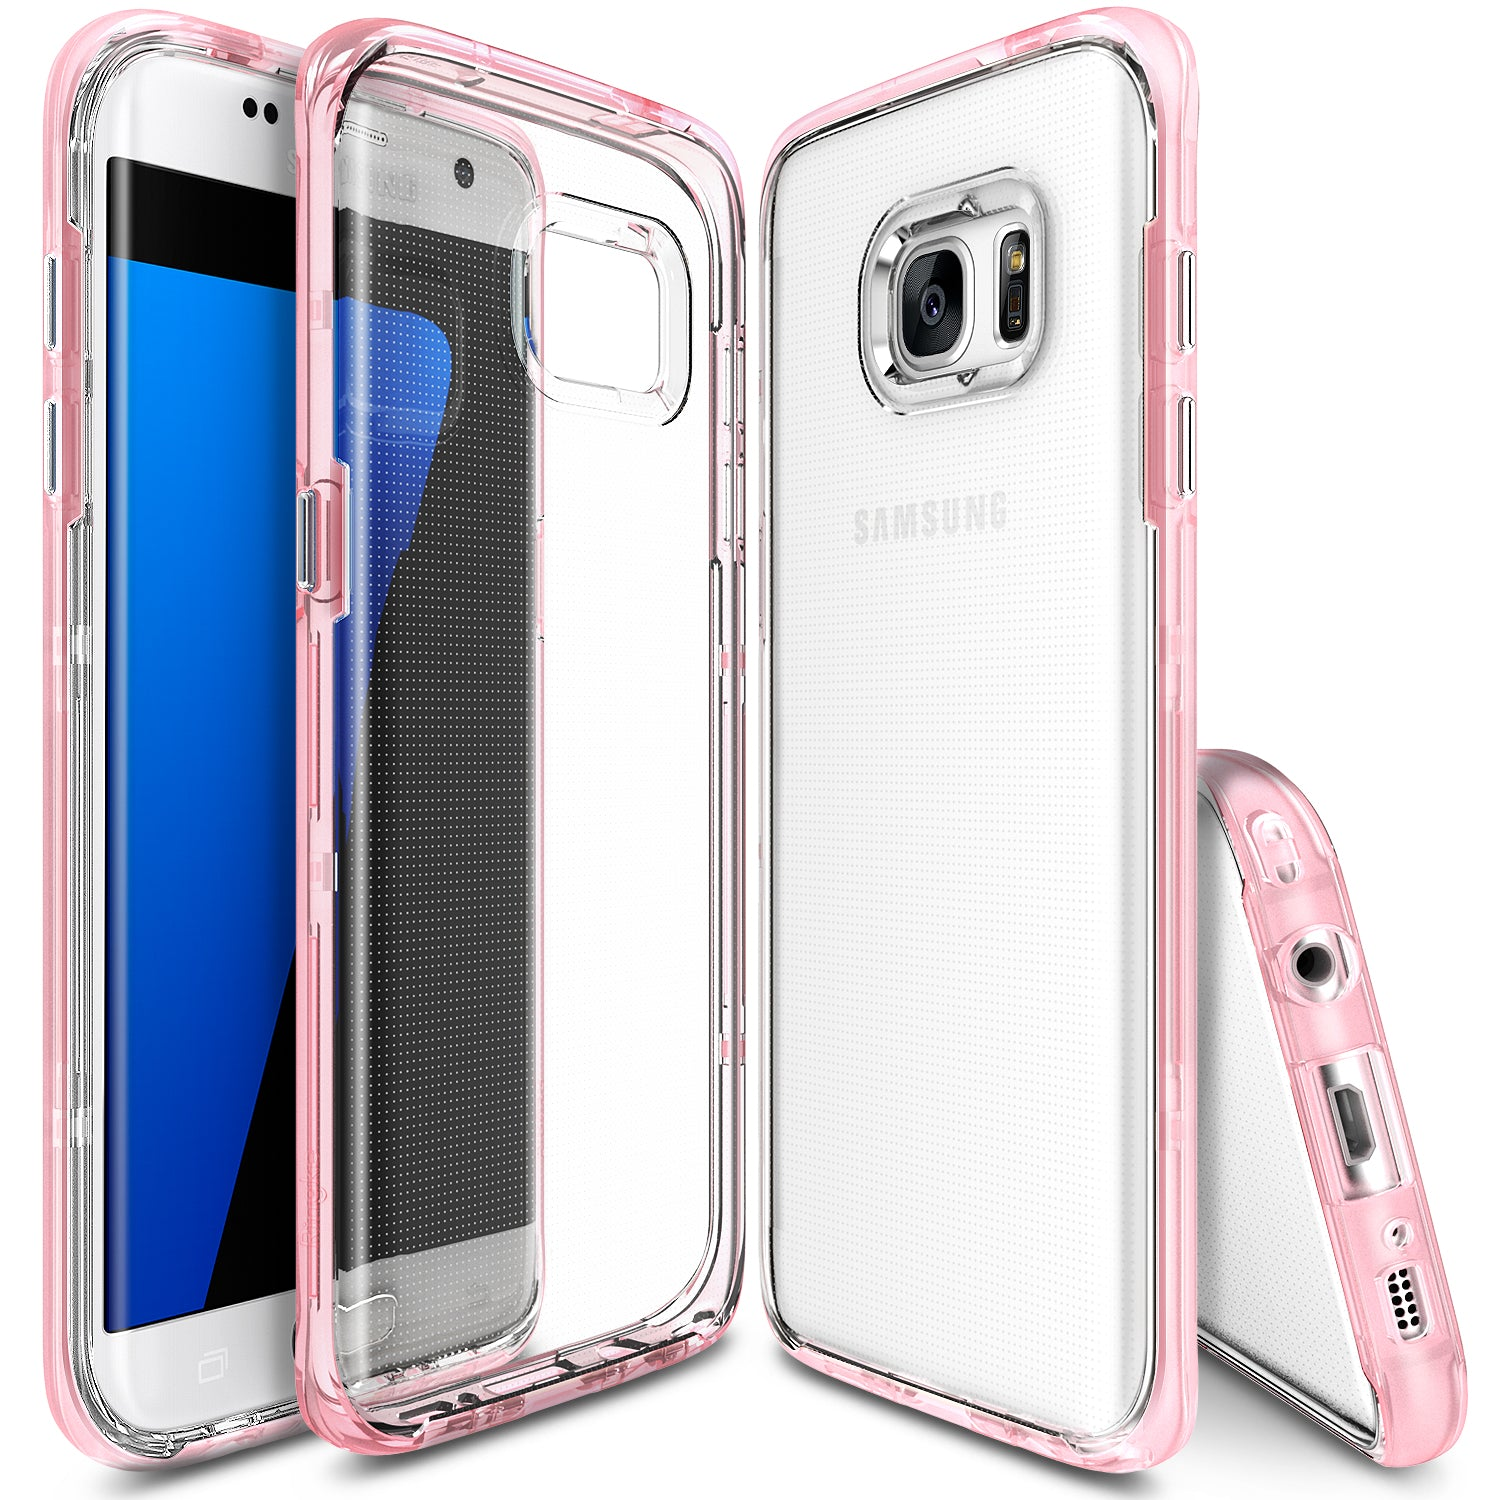 ringke frame clear back advanced bumper protection cover case for galaxy s7 edge frost pink